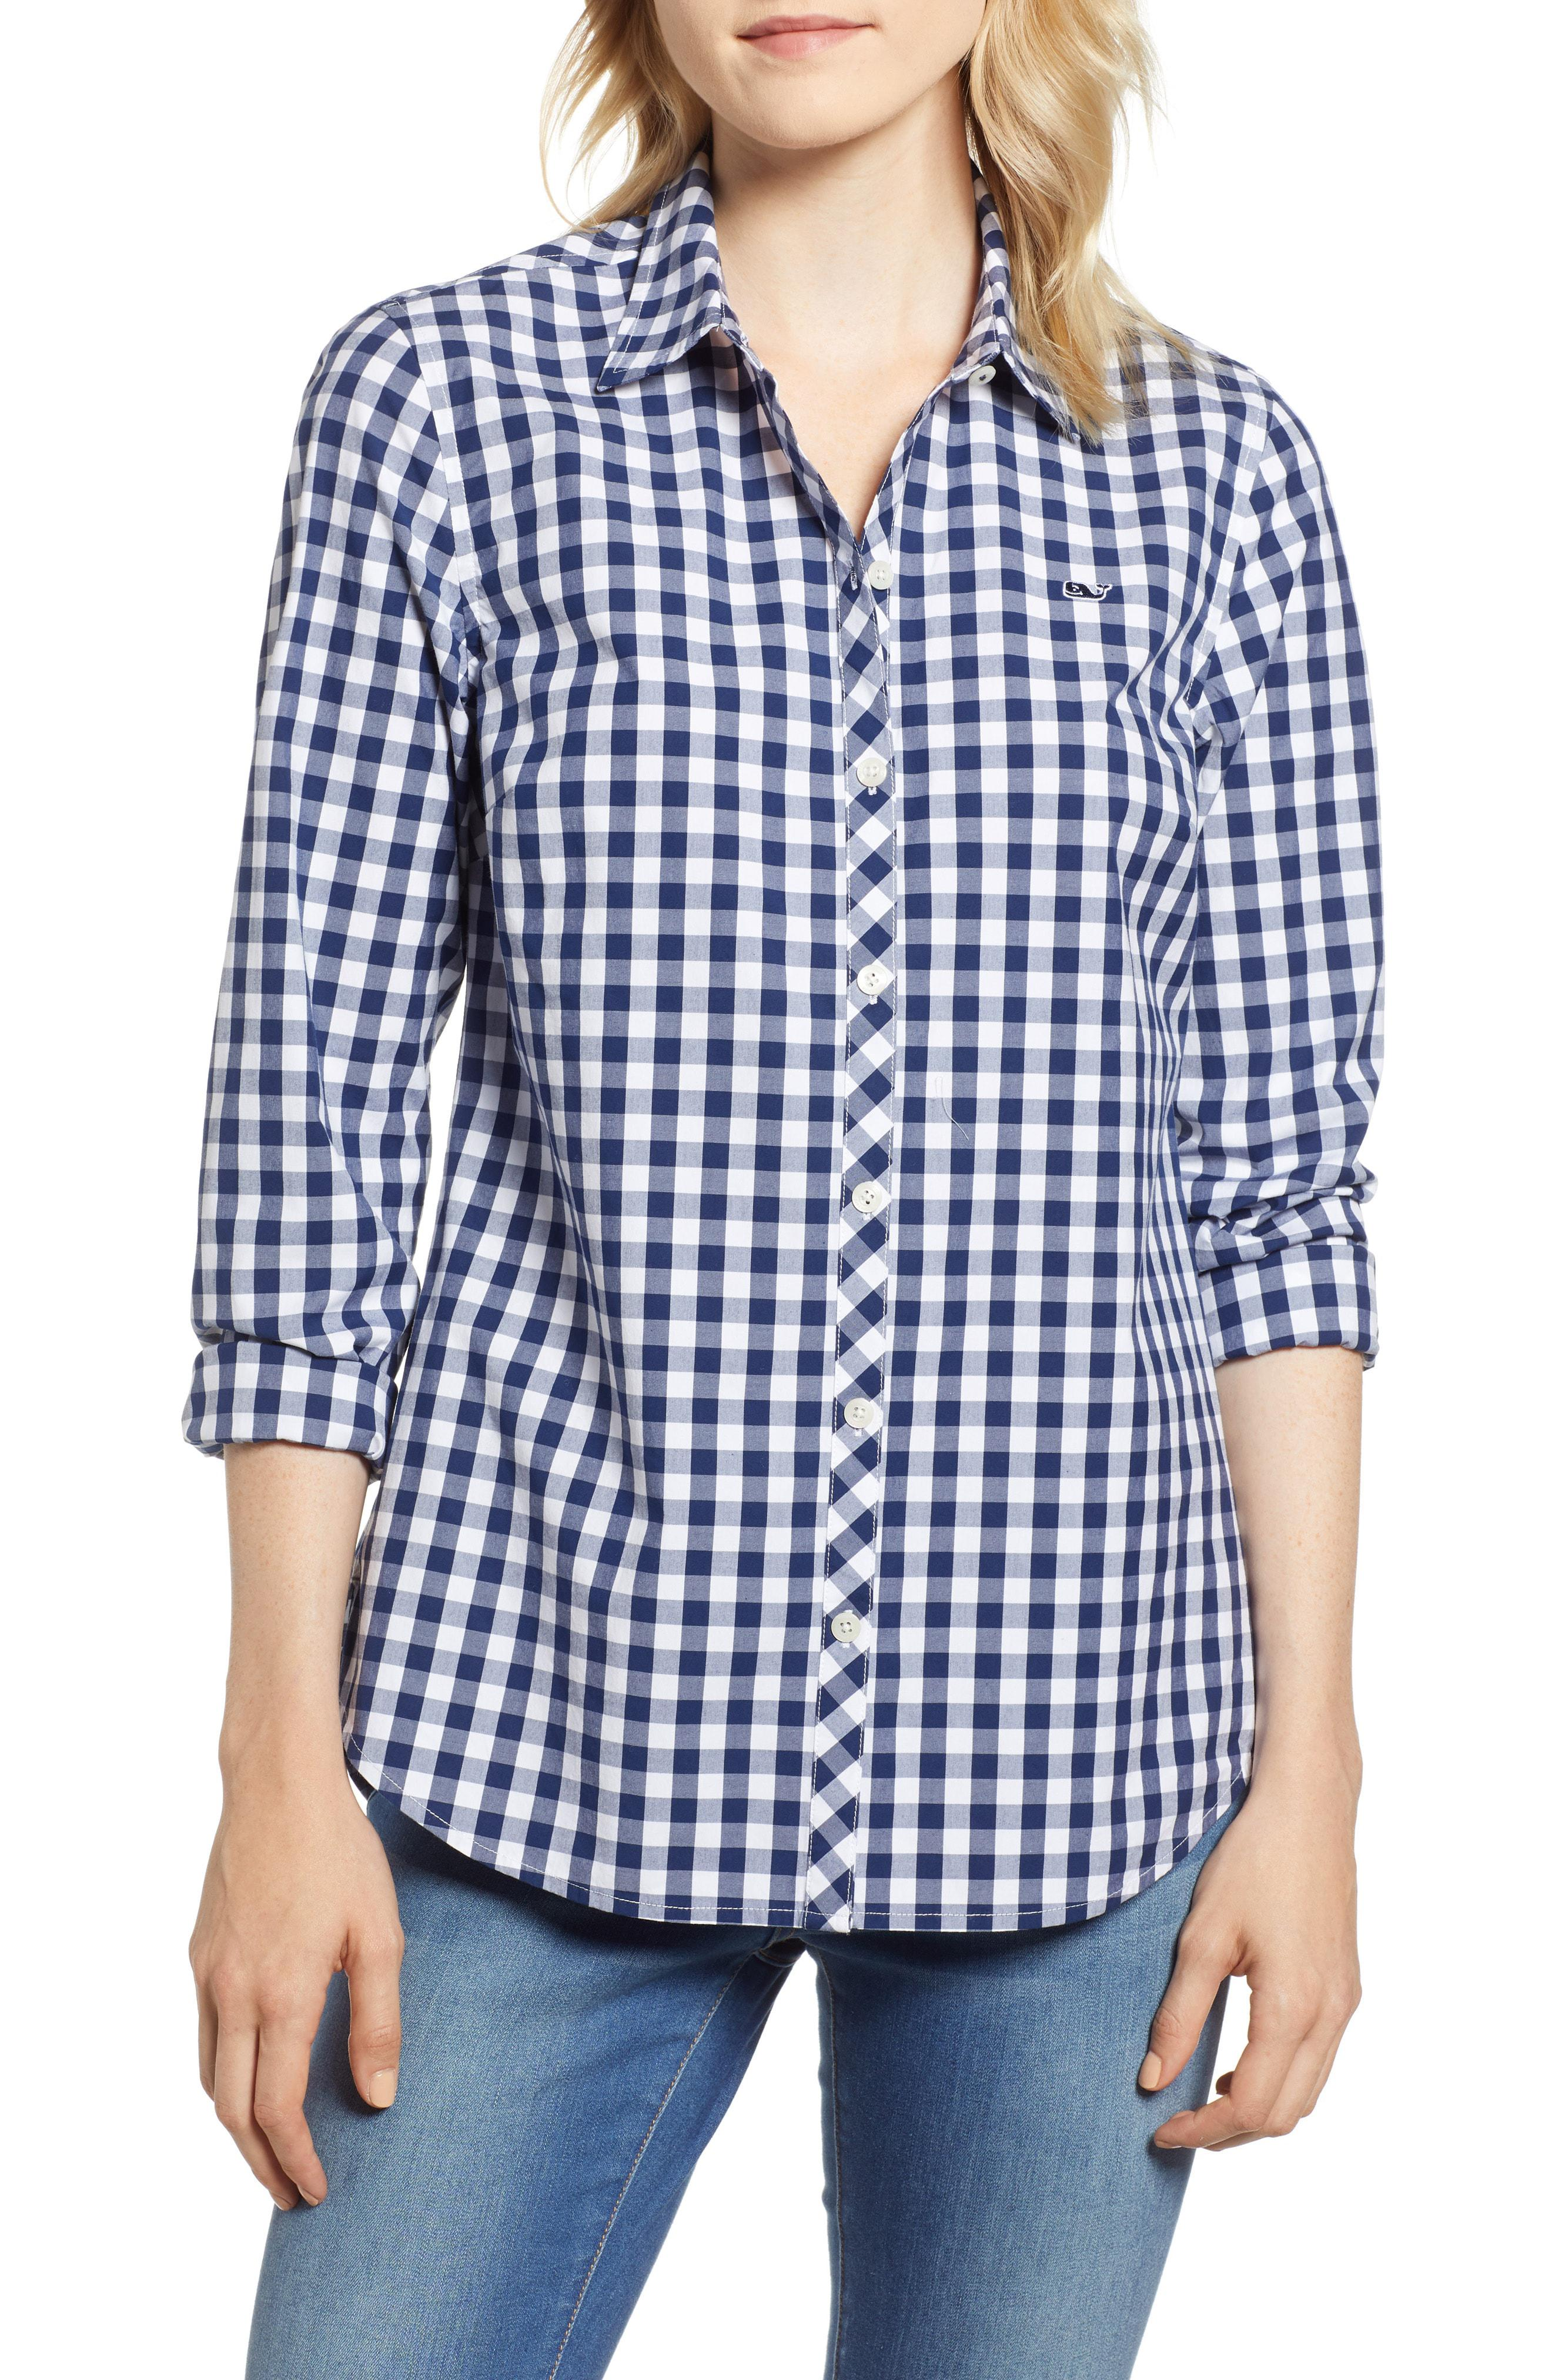 70c67aa7 Lyst - Vineyard Vines Mini Gingham Classic Button Down in Blue